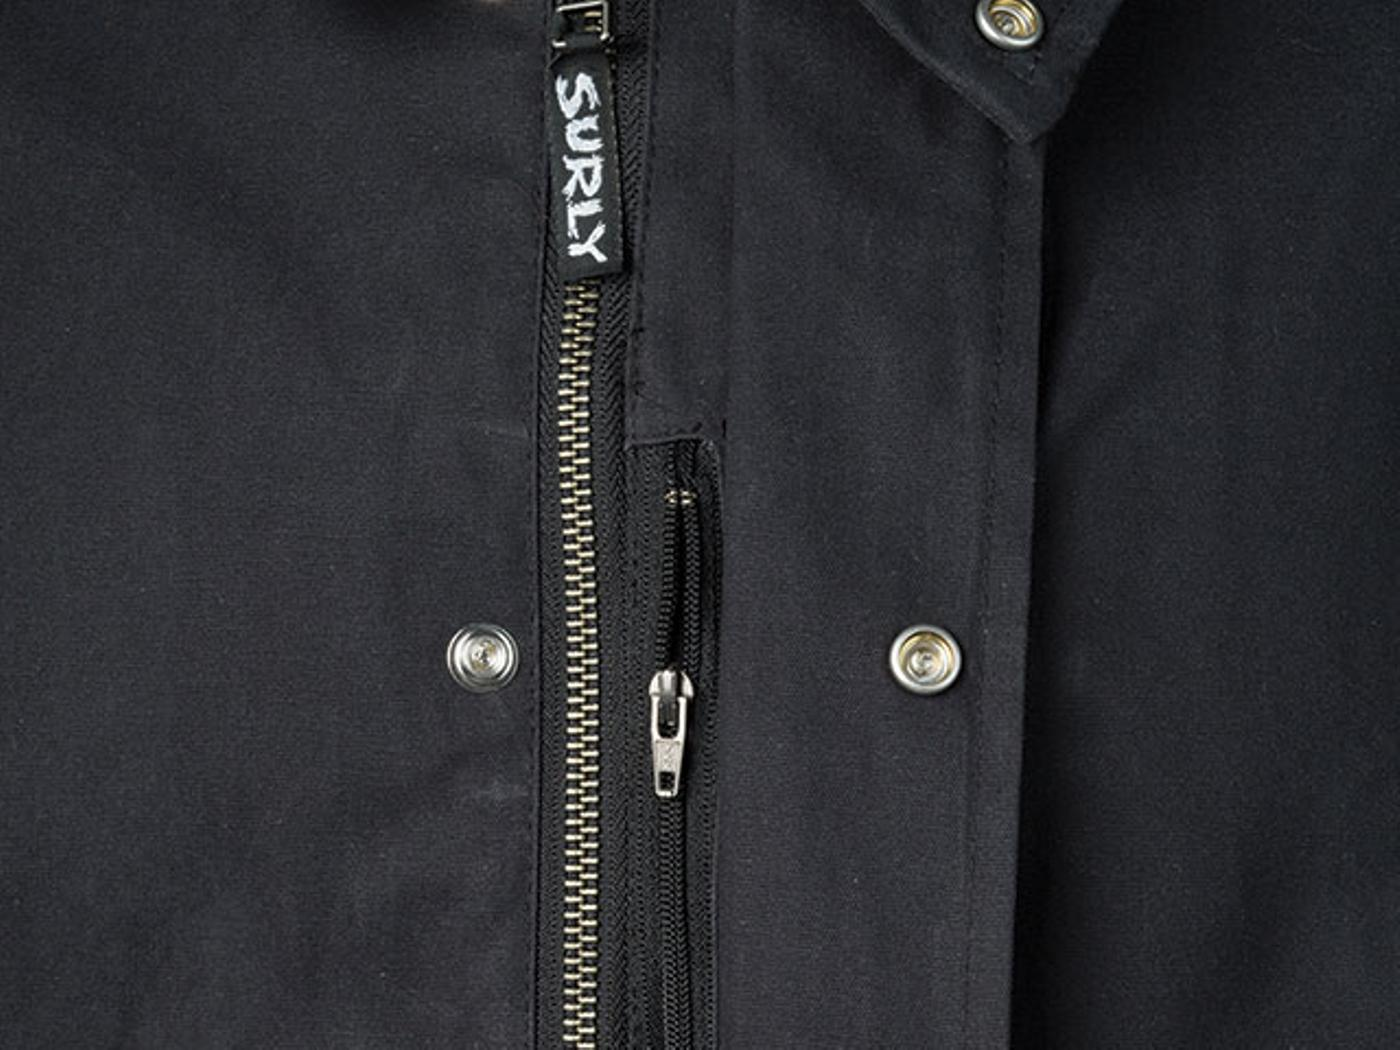 Surly_Jacket-02